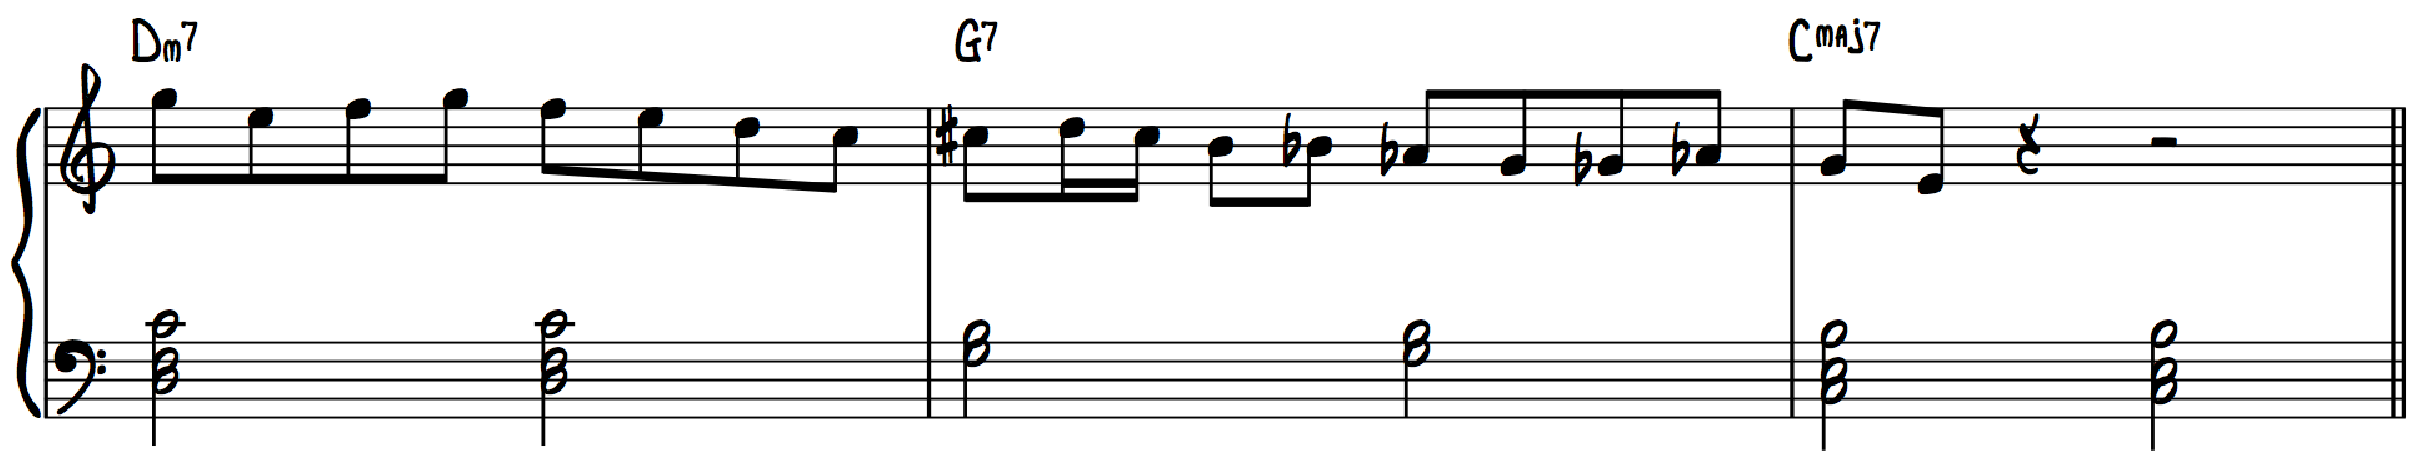 2-5-1 Lick Straight 8ths Even Eighths Classical Standard Eighth Notes